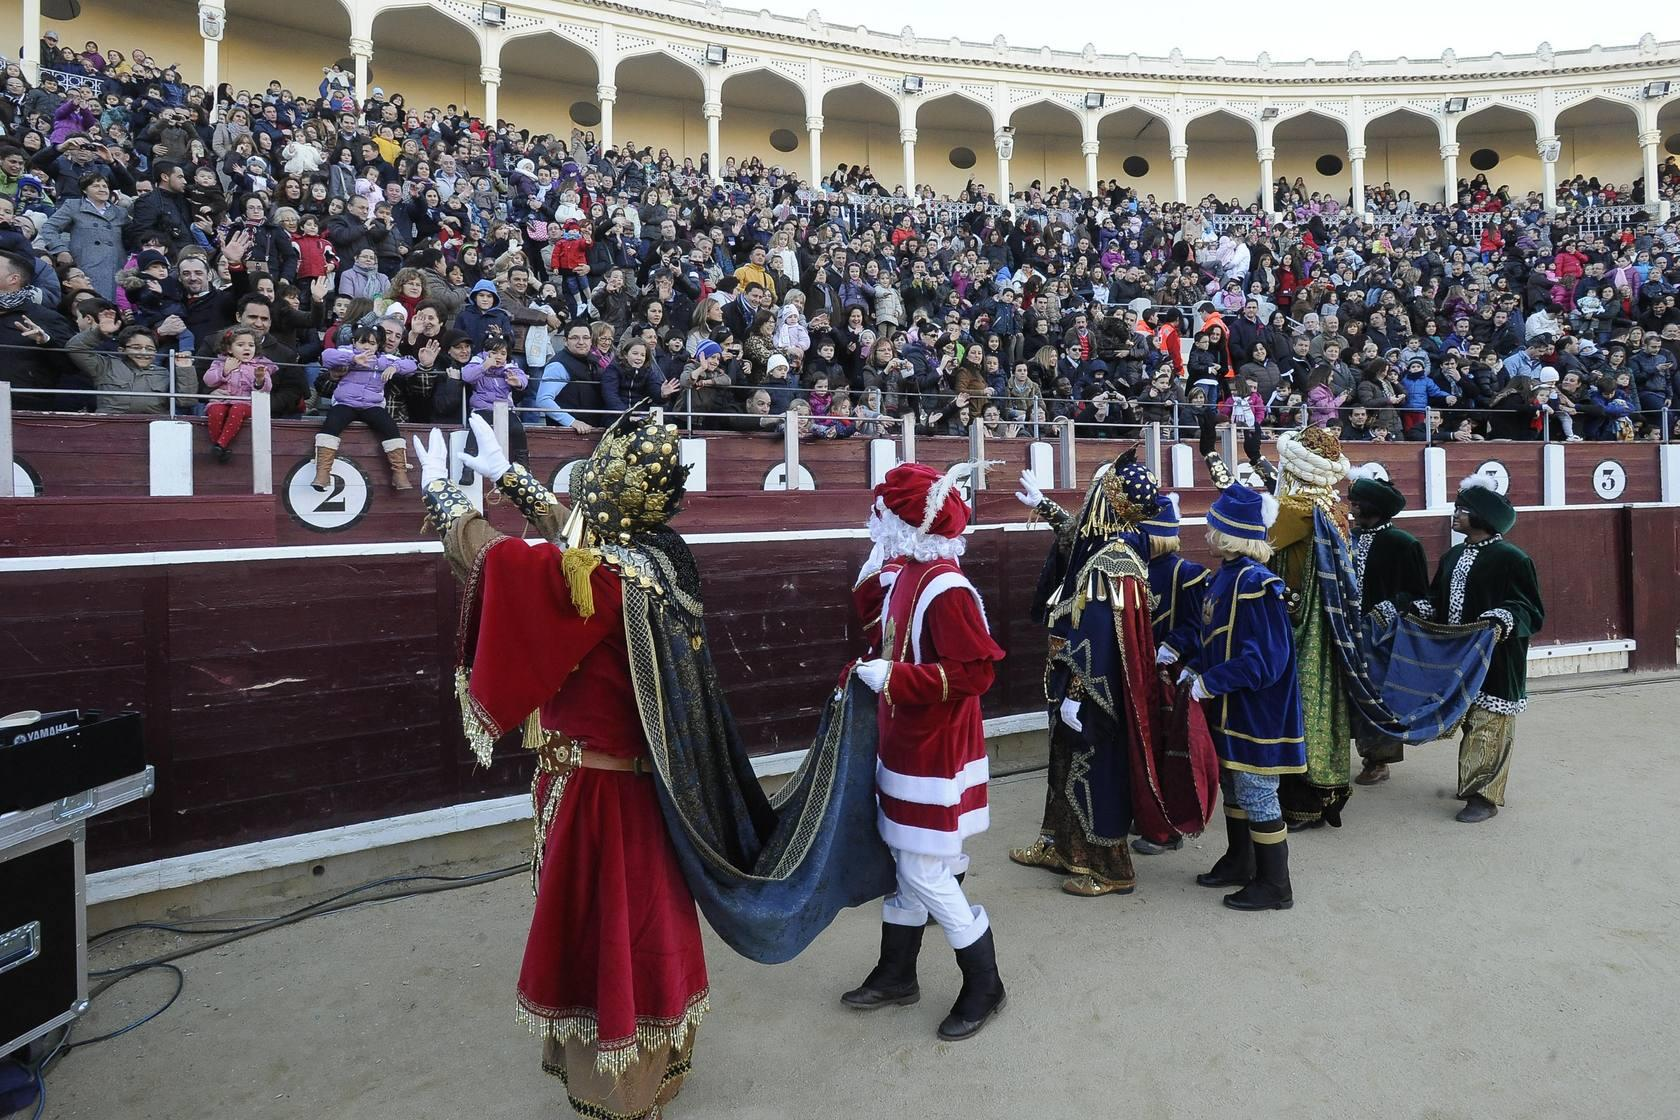 Magia e ilusi&oacute;n en la Cabalgata de Reyes de Albacete